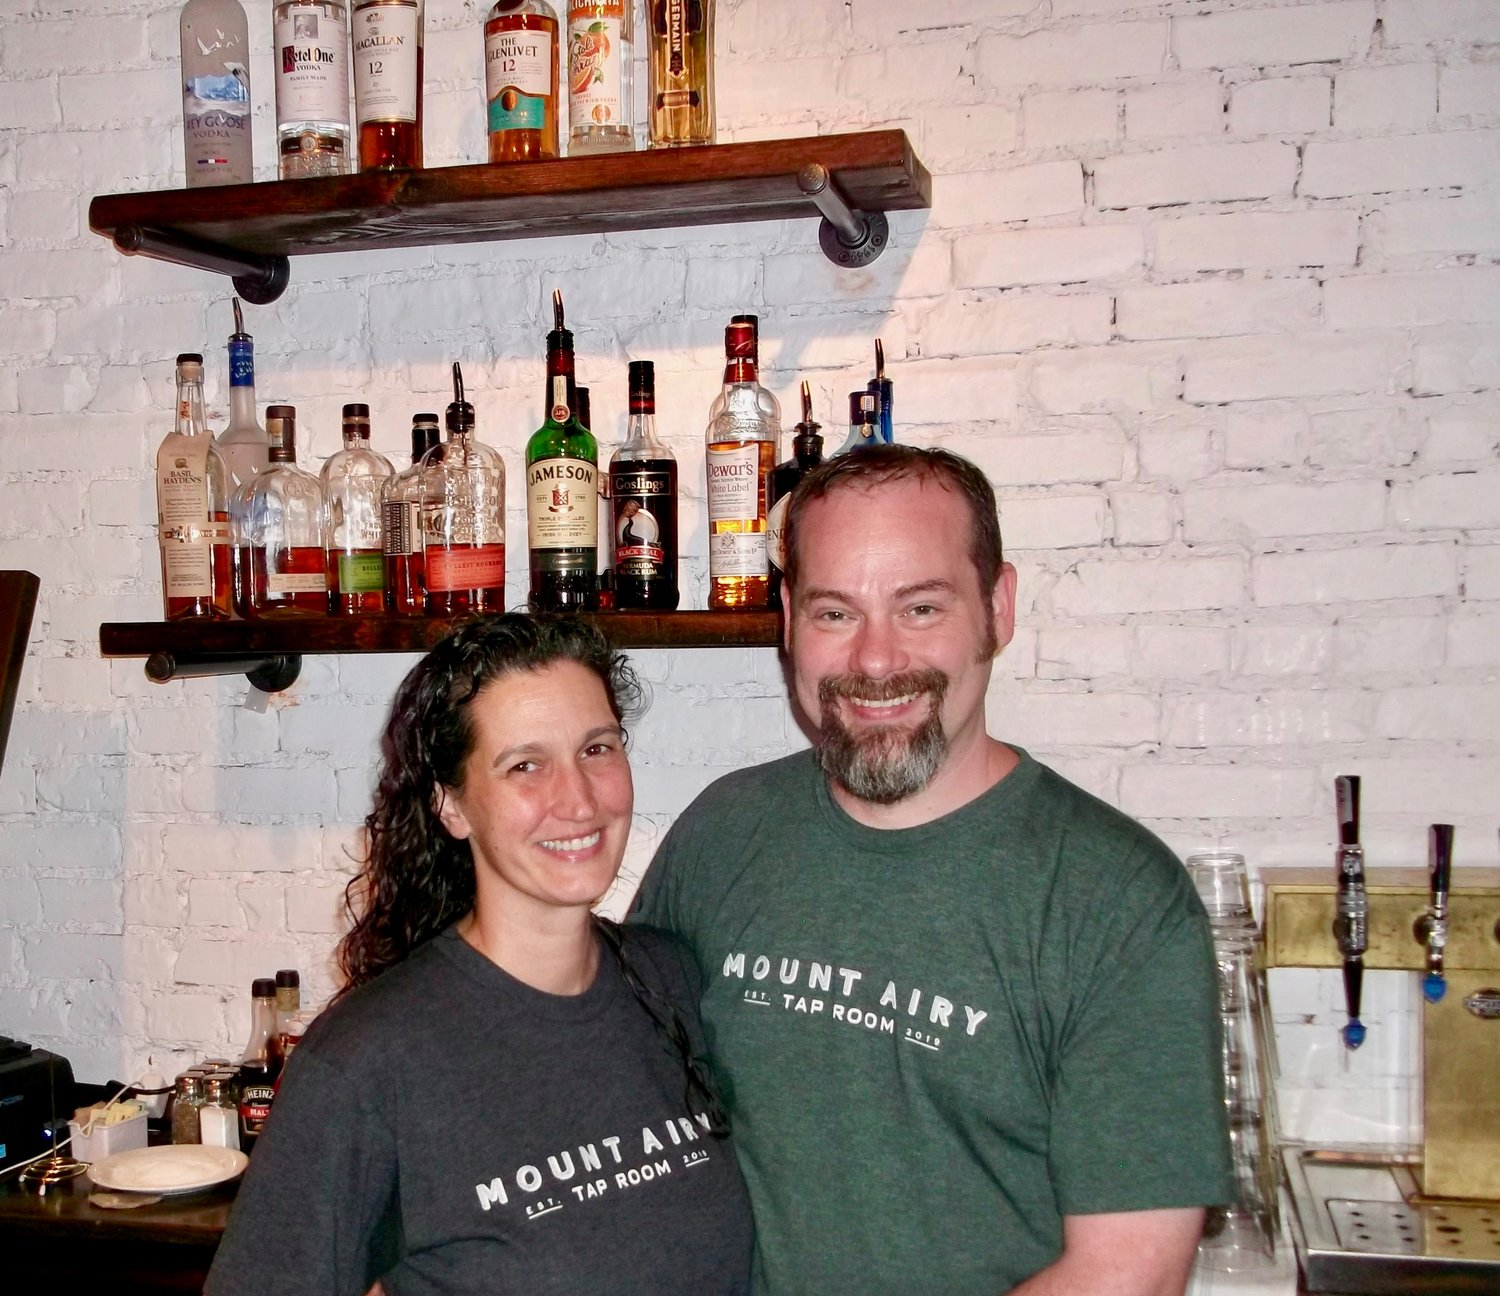 Long-time Mt. Airy residents Rob and Elizabeth Pelszynski opened the new Mt. Airy Taproom in the former home of Goat Hollow six months before the pandemic started. (Phots by Len Lear)